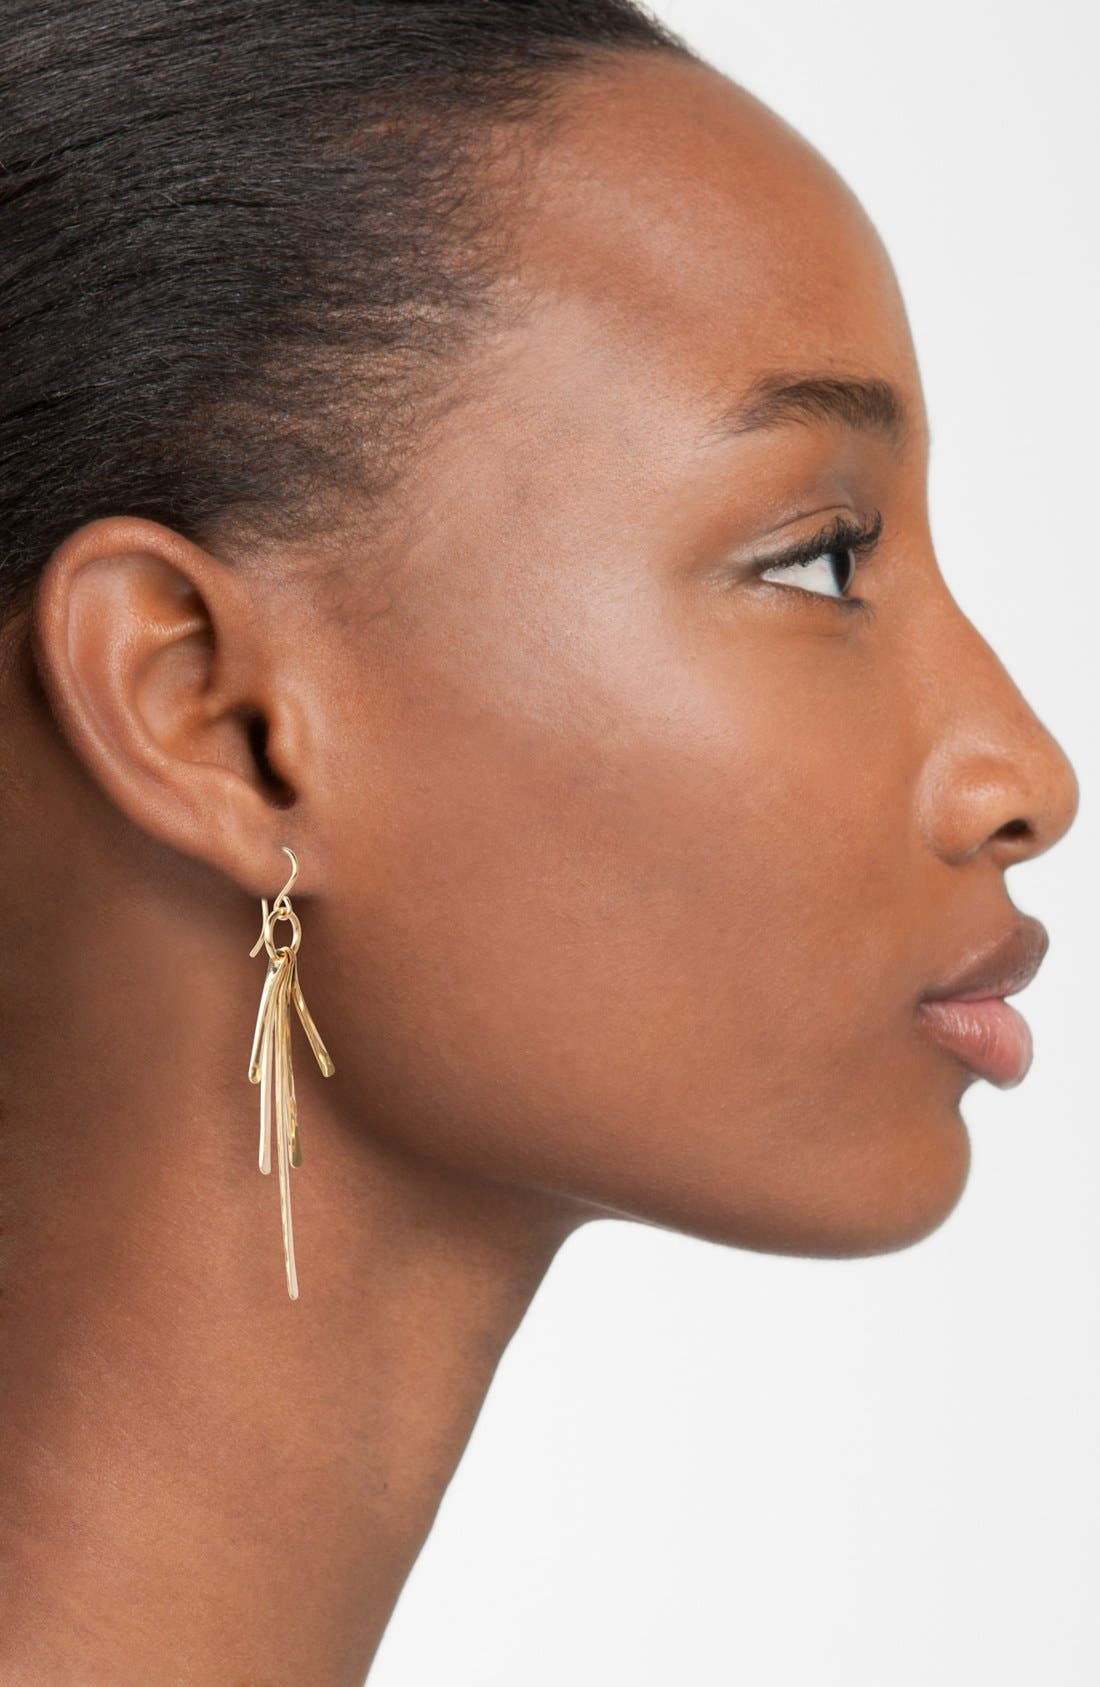 Ija Sunburst Drop Earrings,                             Alternate thumbnail 2, color,                             14K Gold Fill